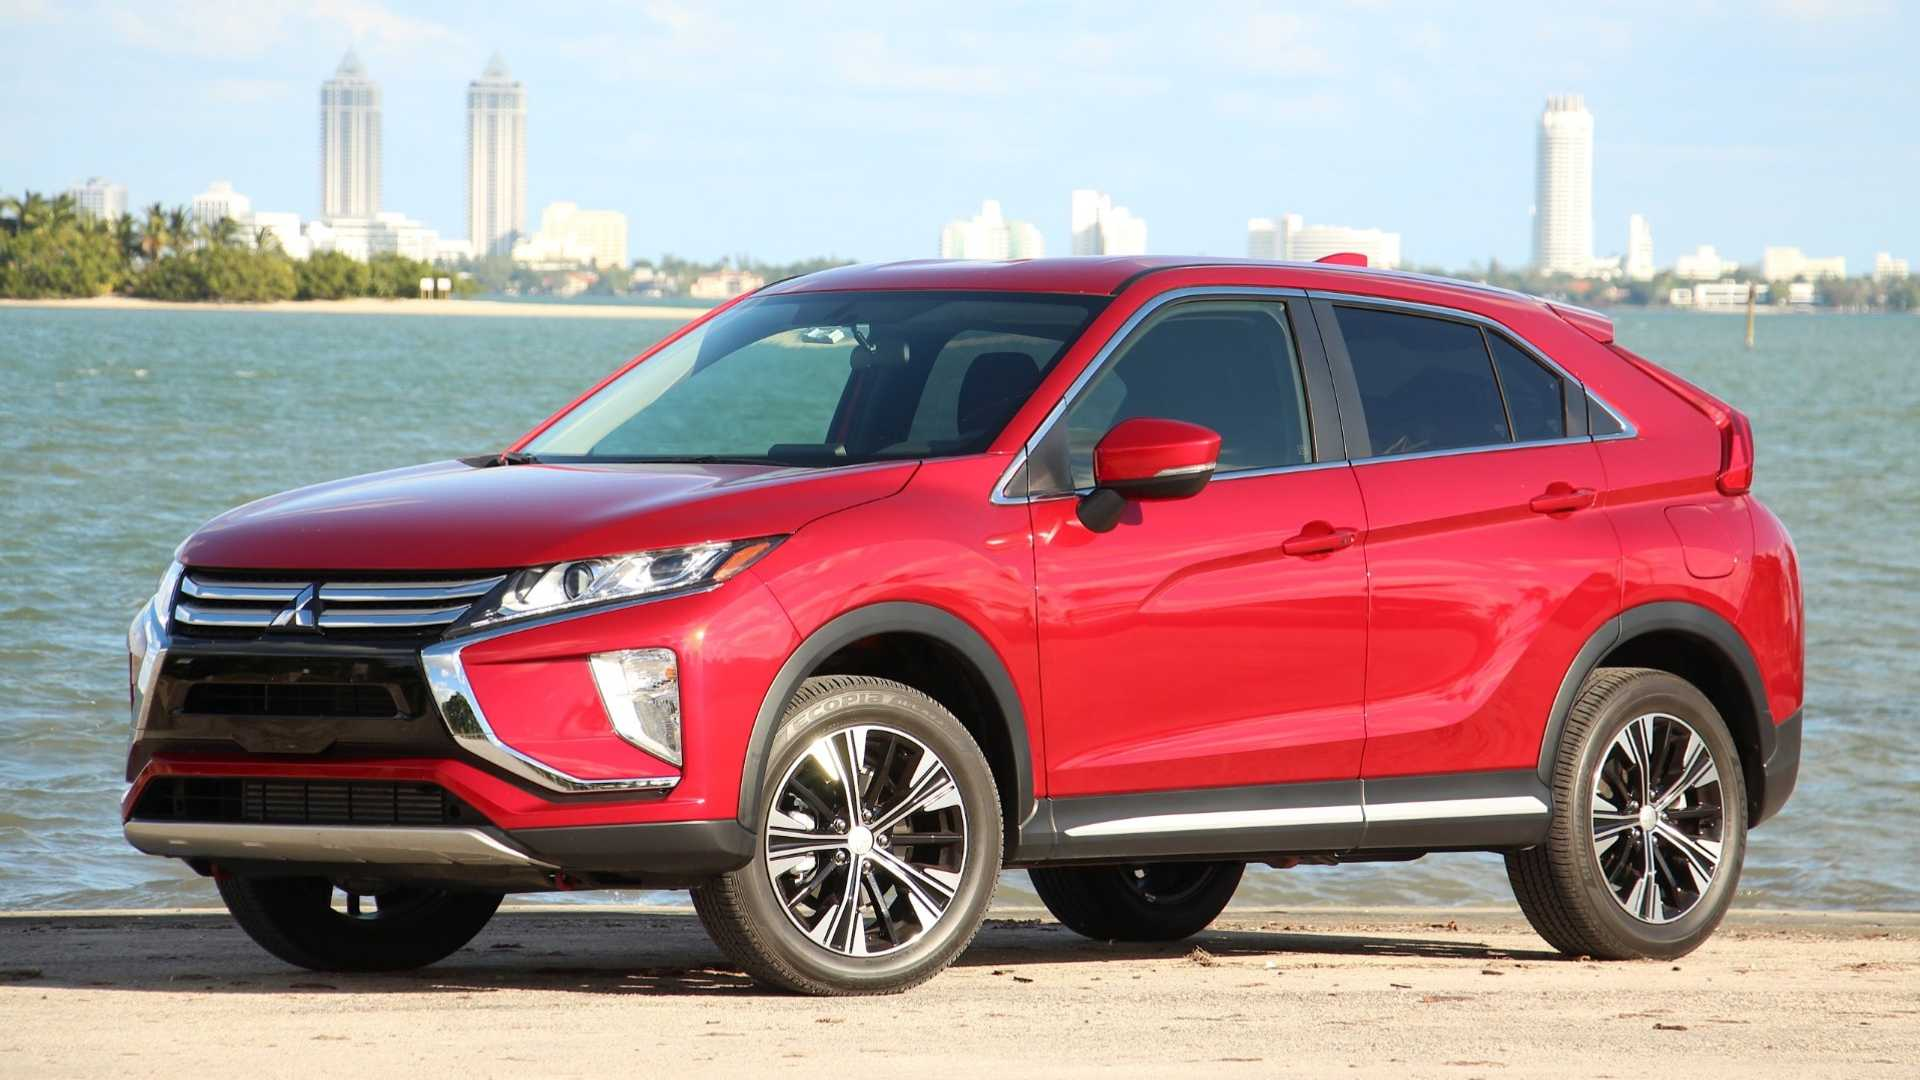 2019-mitsubishi-eclipse-cross-se-review.